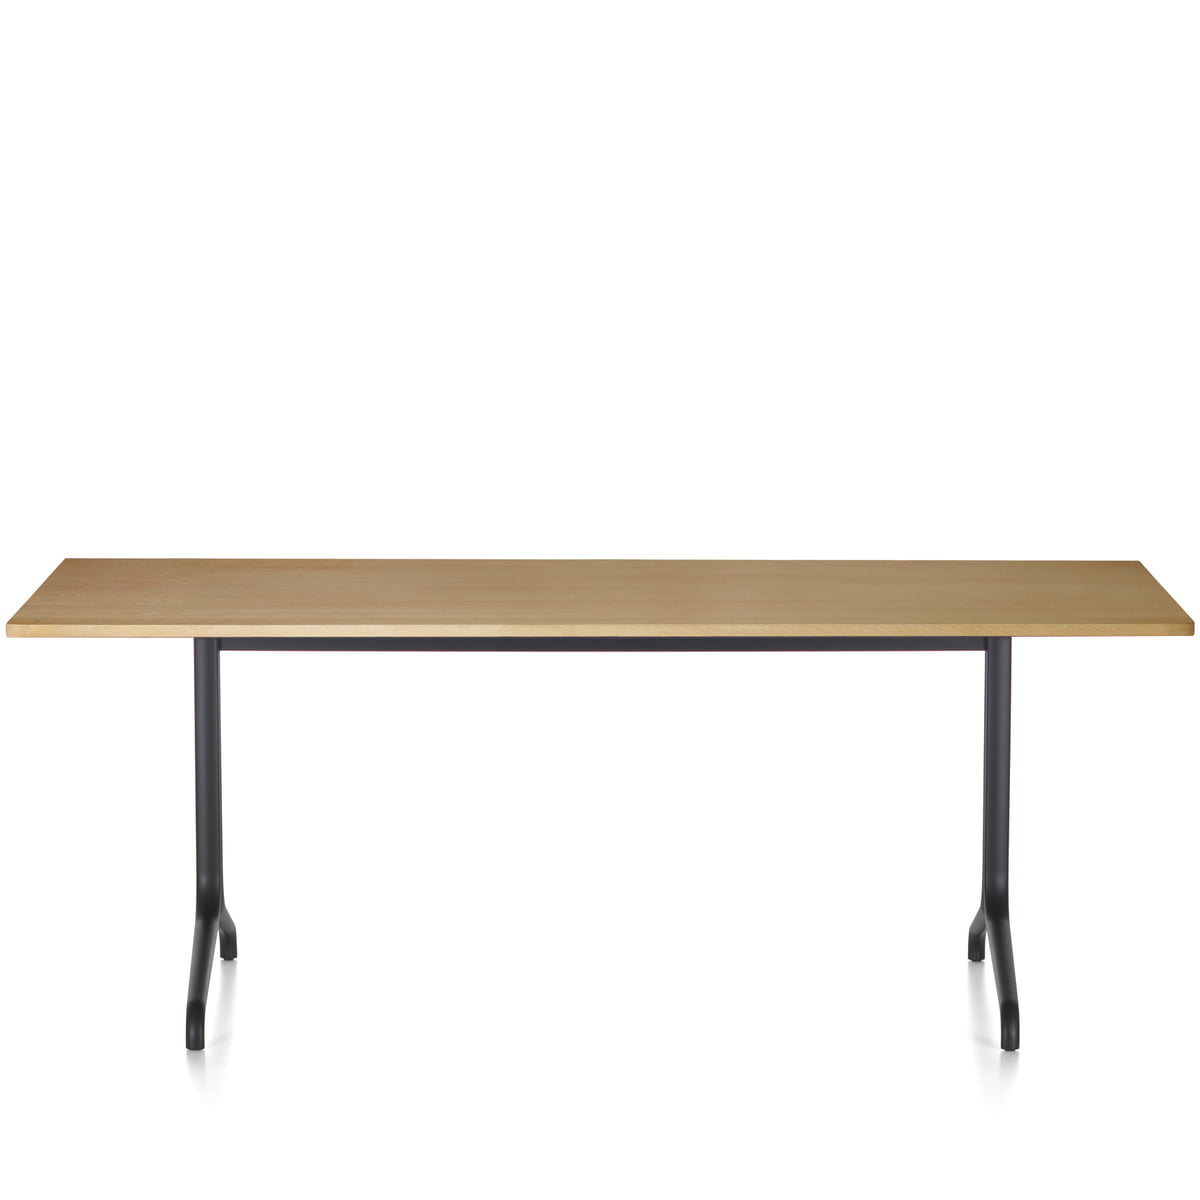 Belleville dining table indoor by Vitra in the shop